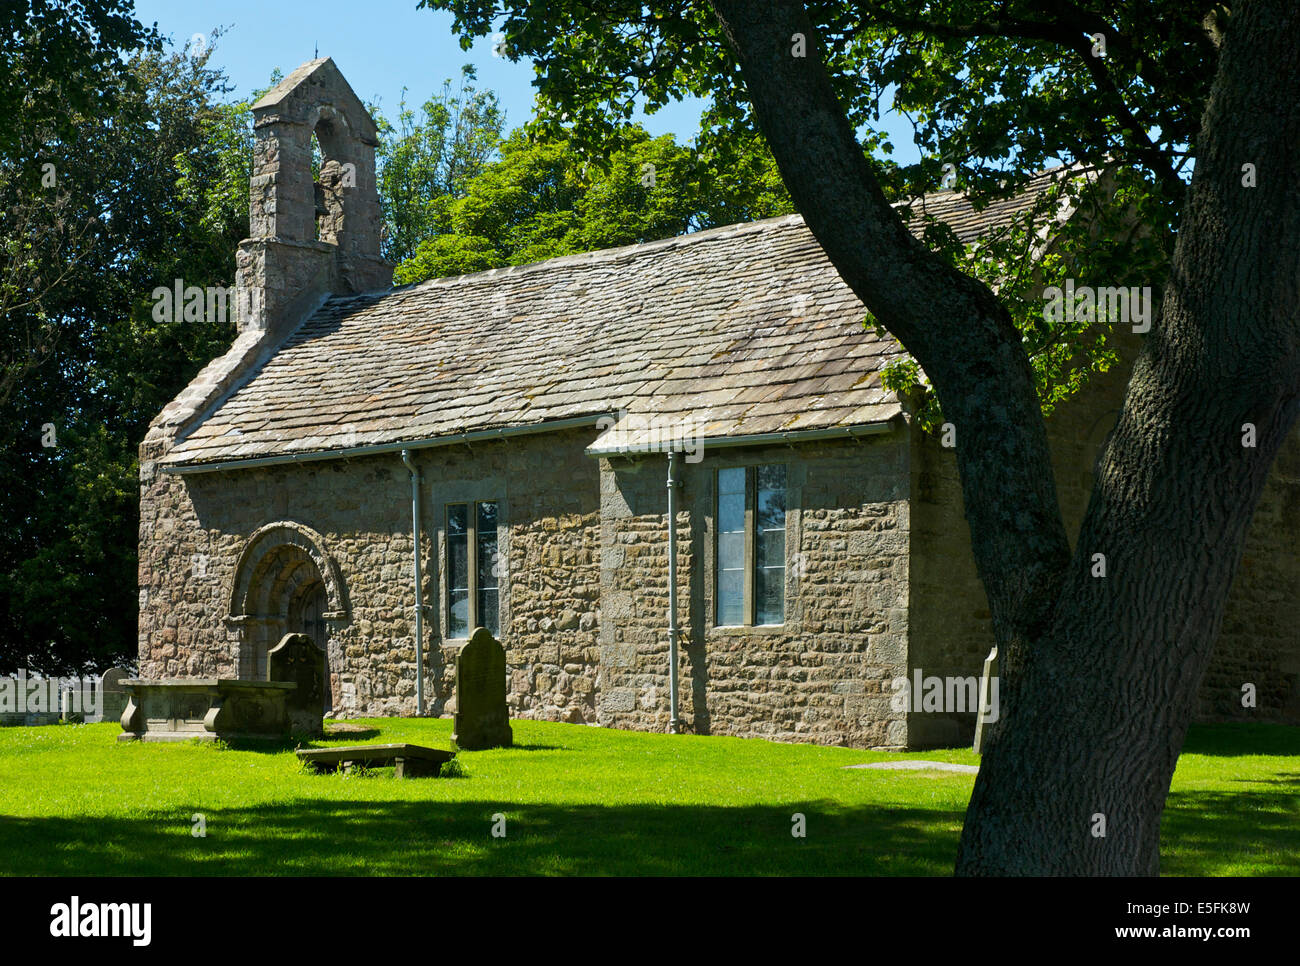 St Helen's Church, Overton, Lancashire, England UK - Stock Image